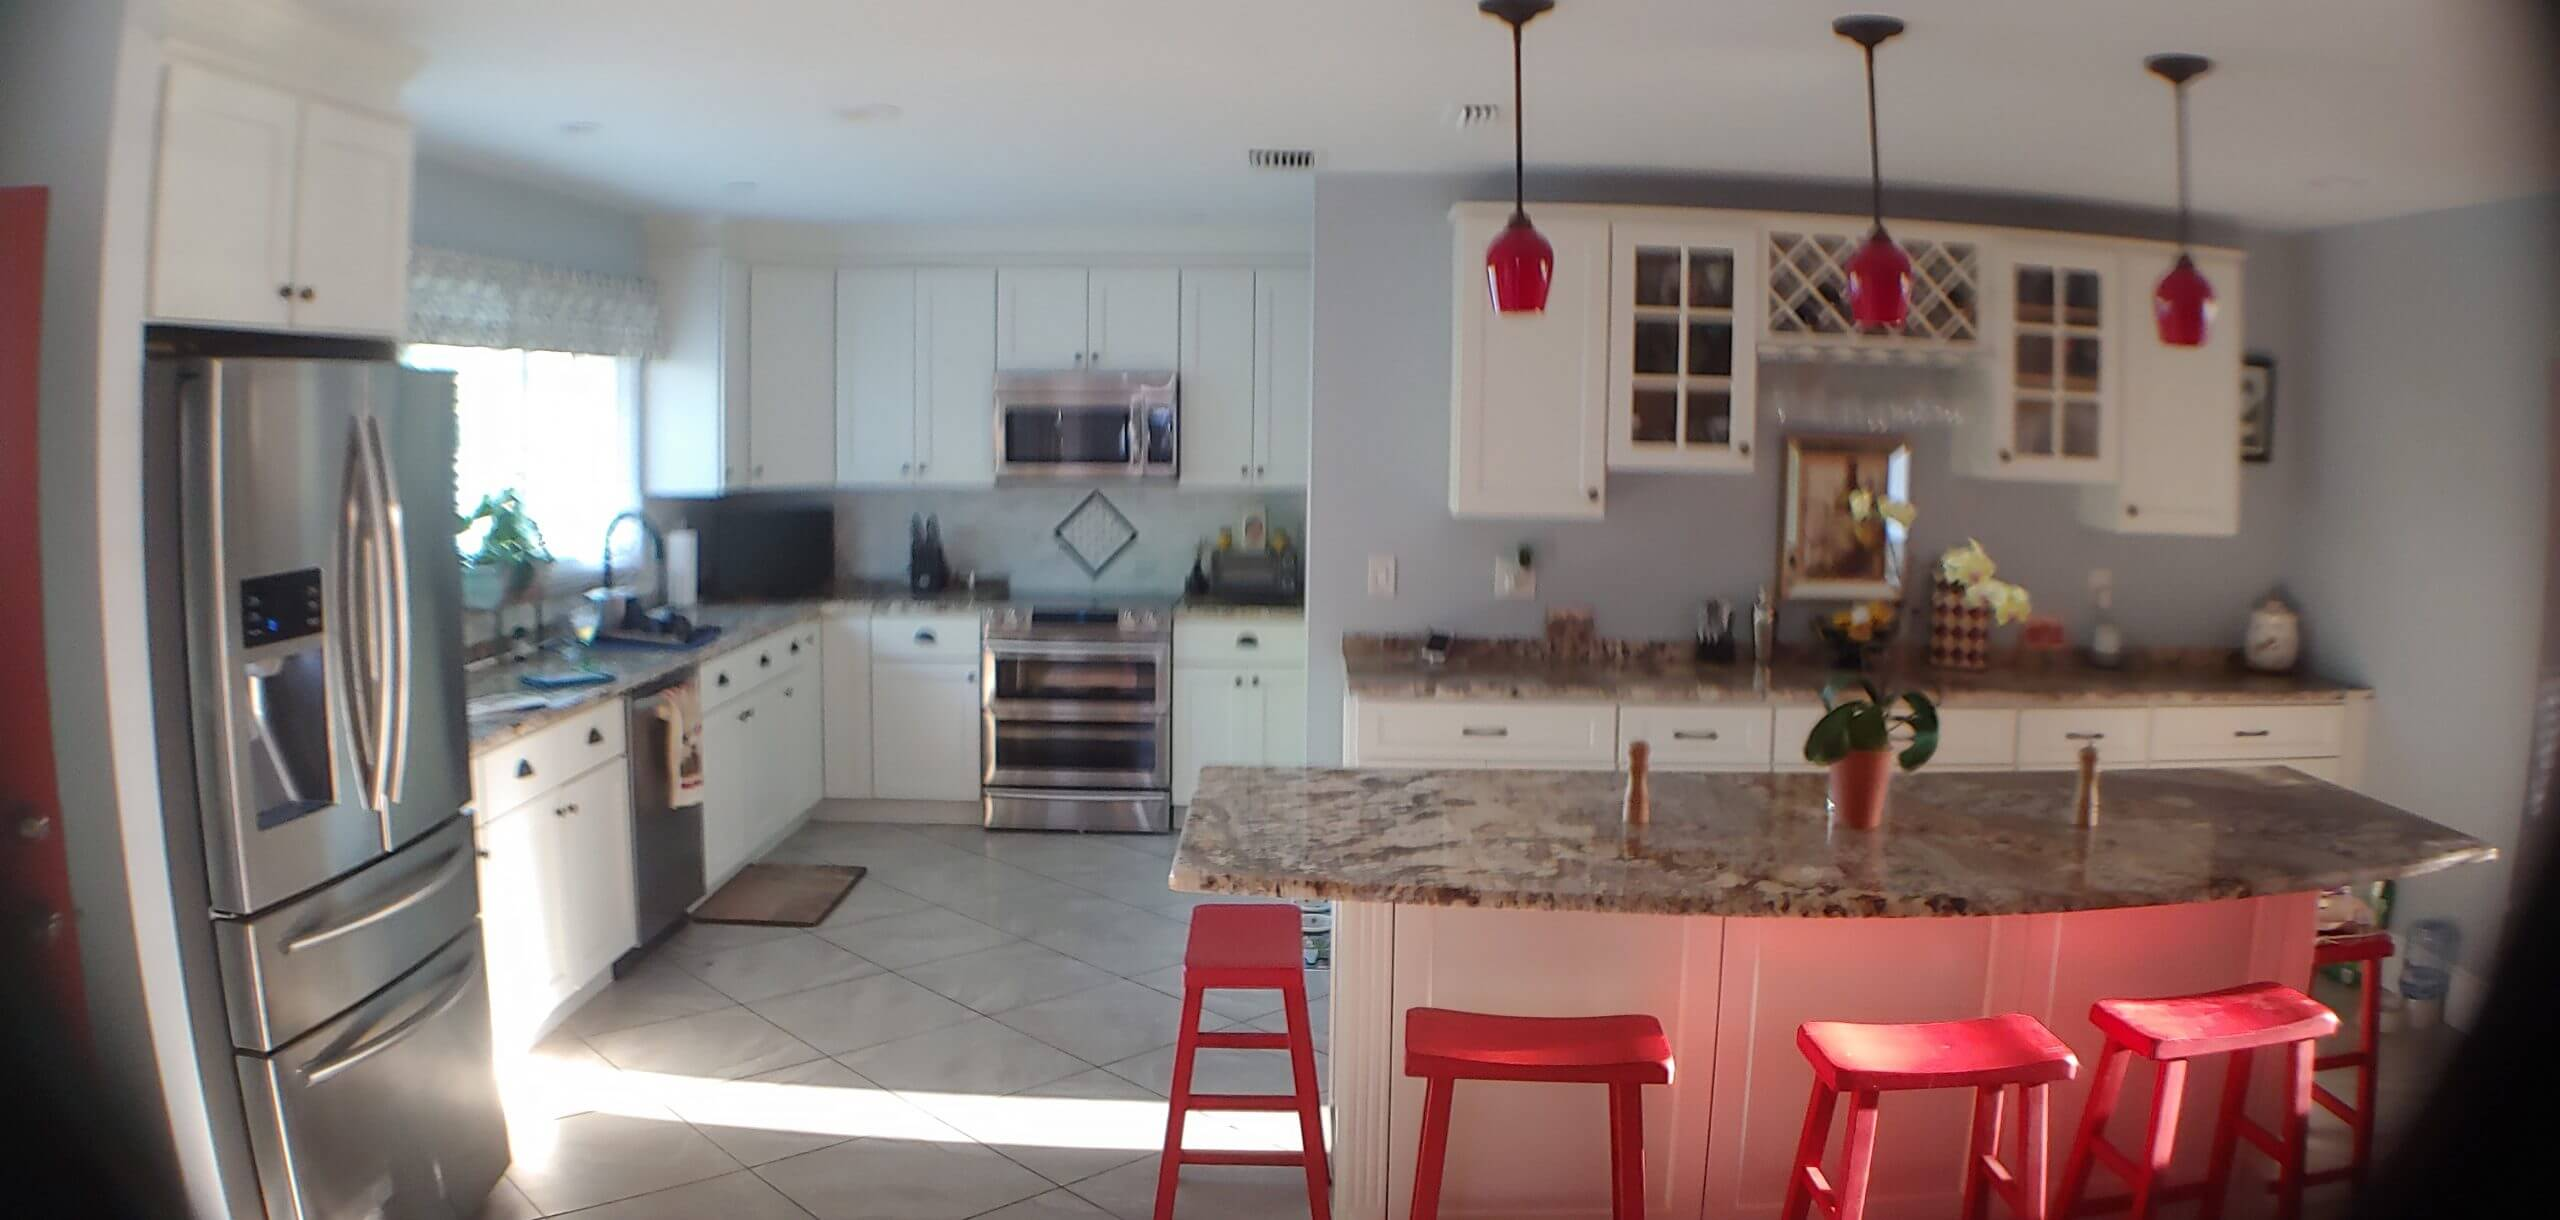 Home Remodeling & Painting Contractor in Cape Coral Florida